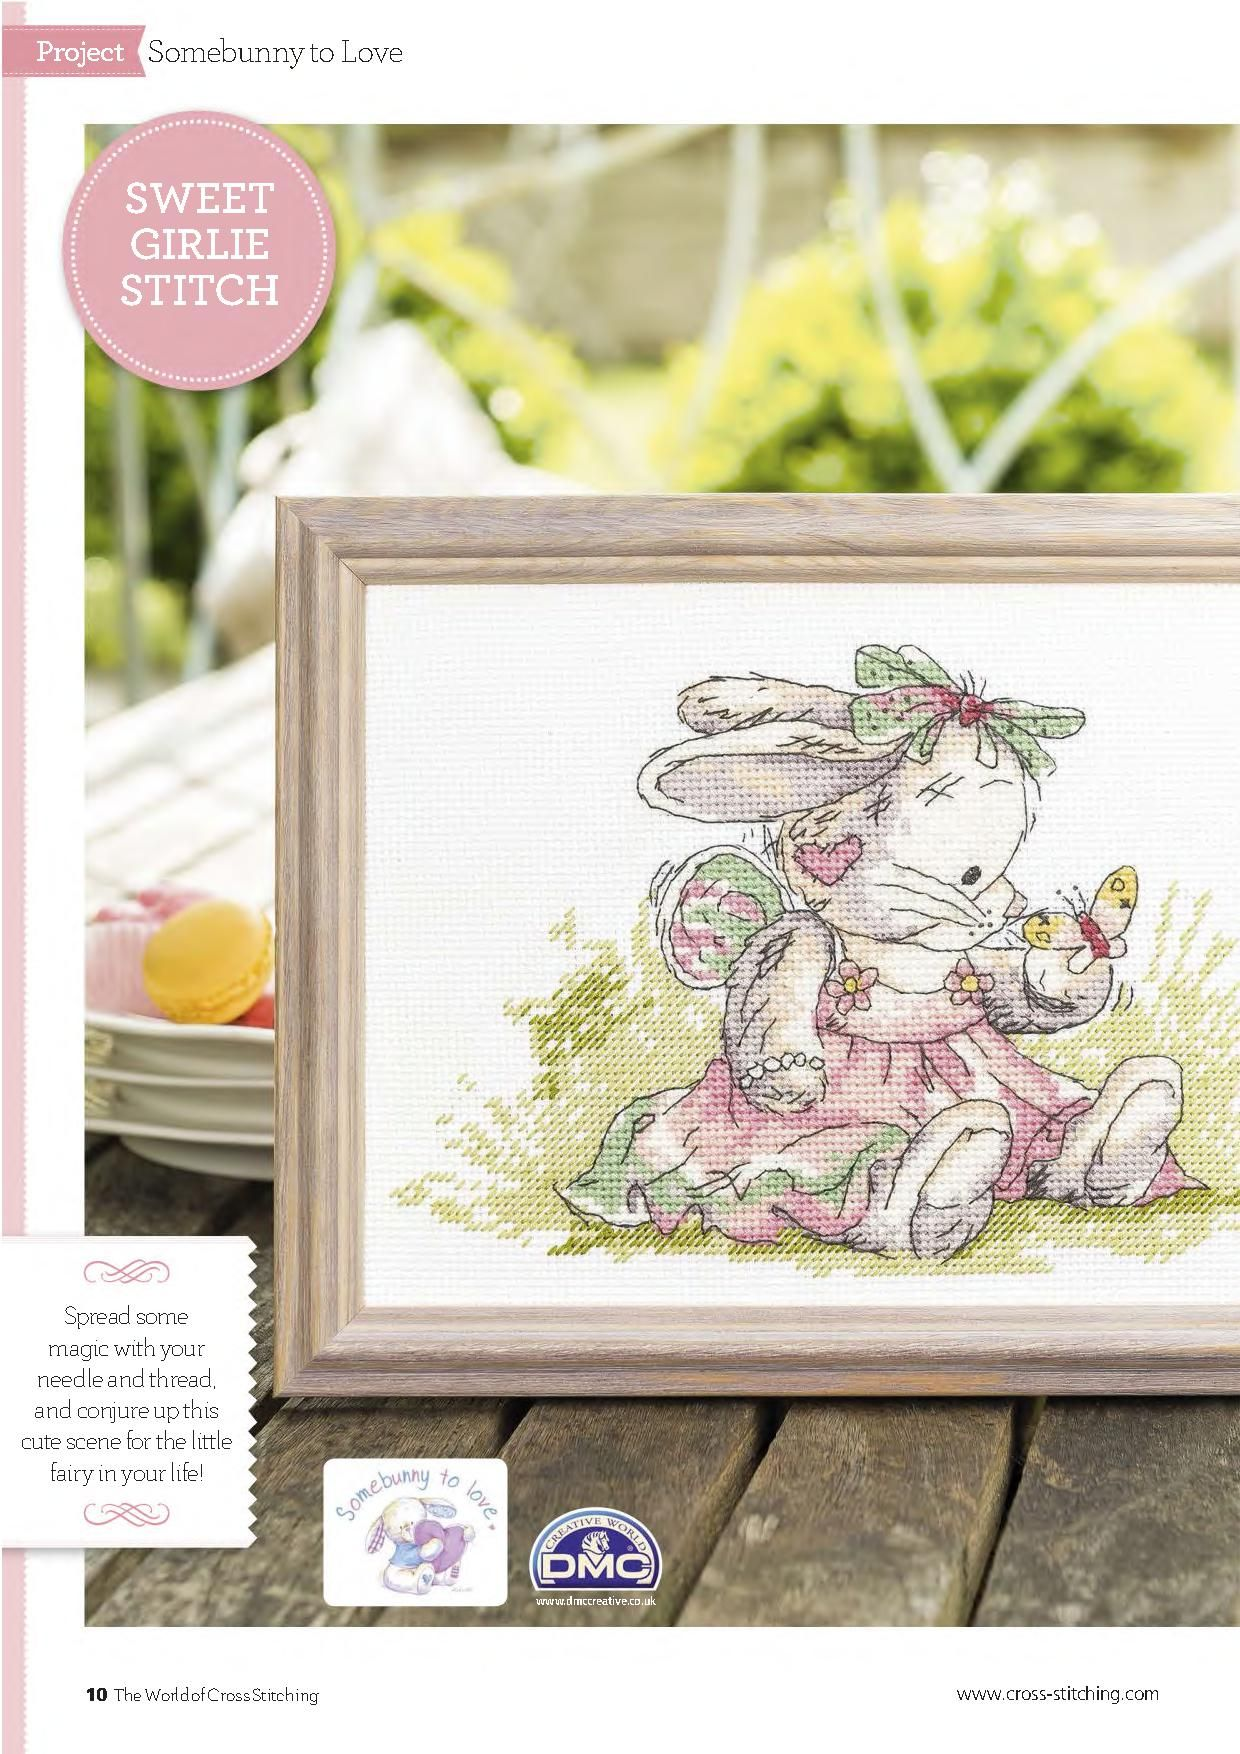 Pretty As A Princess (Somebunny) From The World of Cross Stitching N°126 September 2015 1 of 4